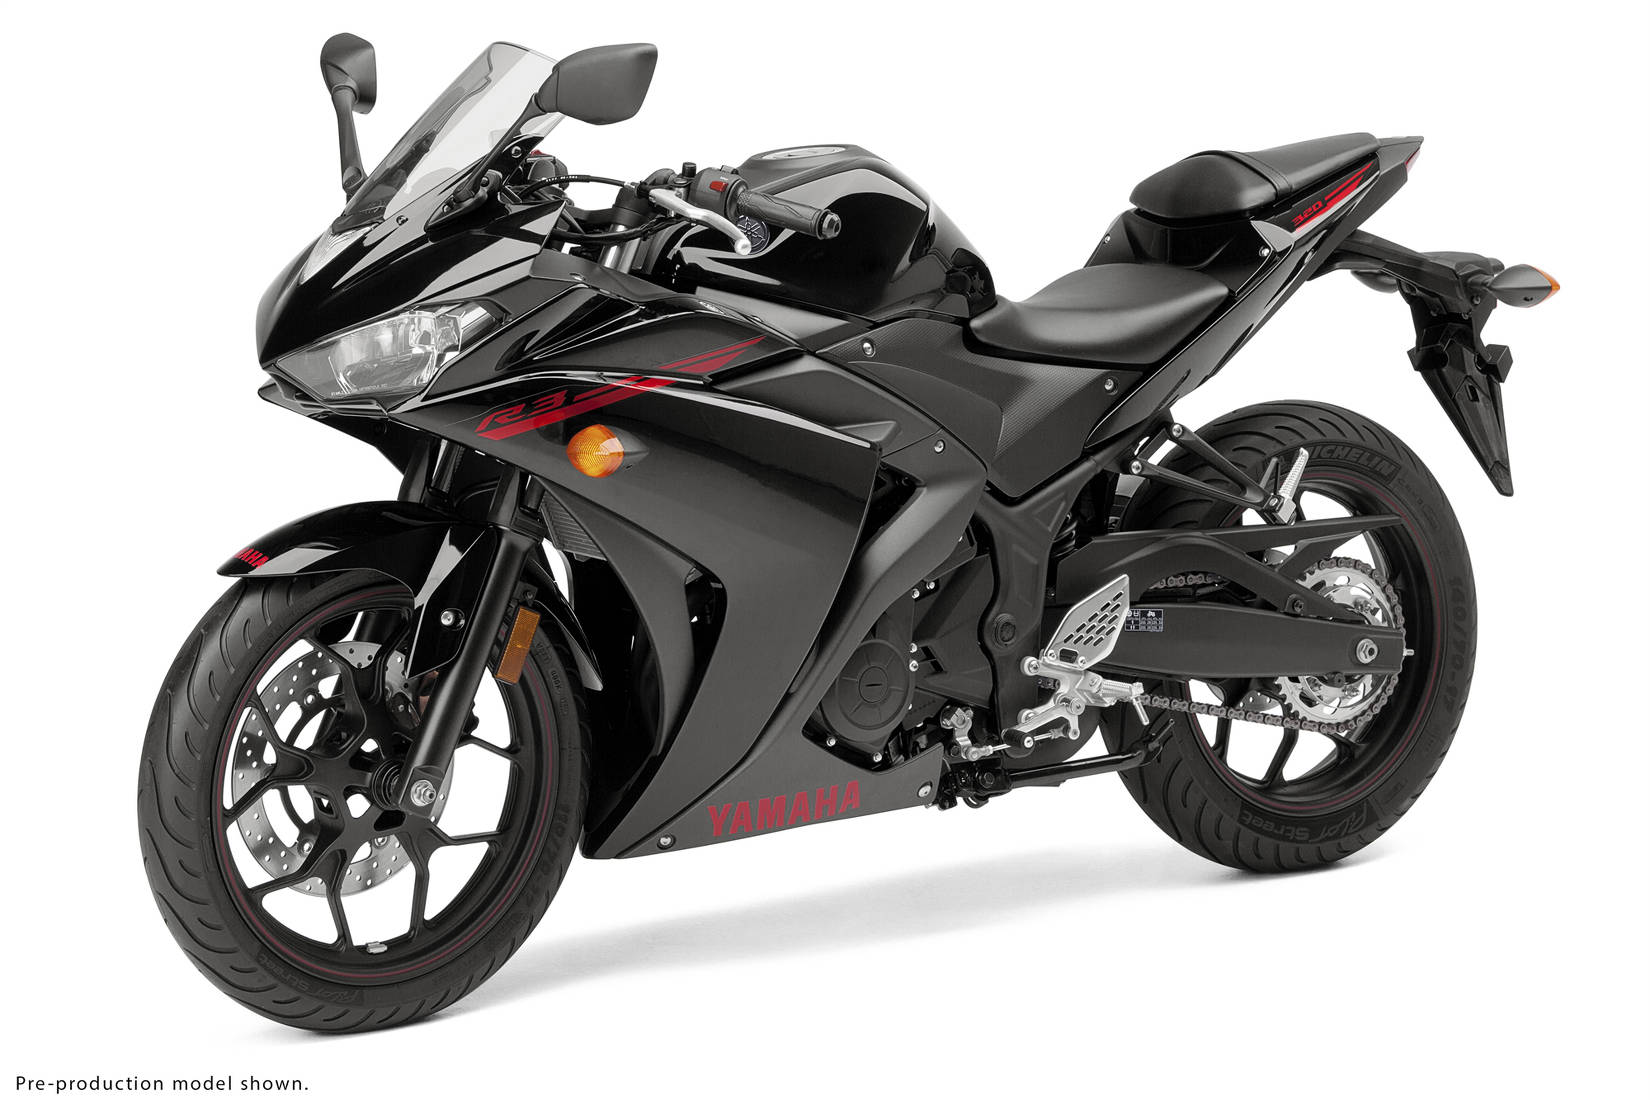 yamaha unveils 2015 yzf r3 goes big with 321cc parallel twin motorcycle. Black Bedroom Furniture Sets. Home Design Ideas